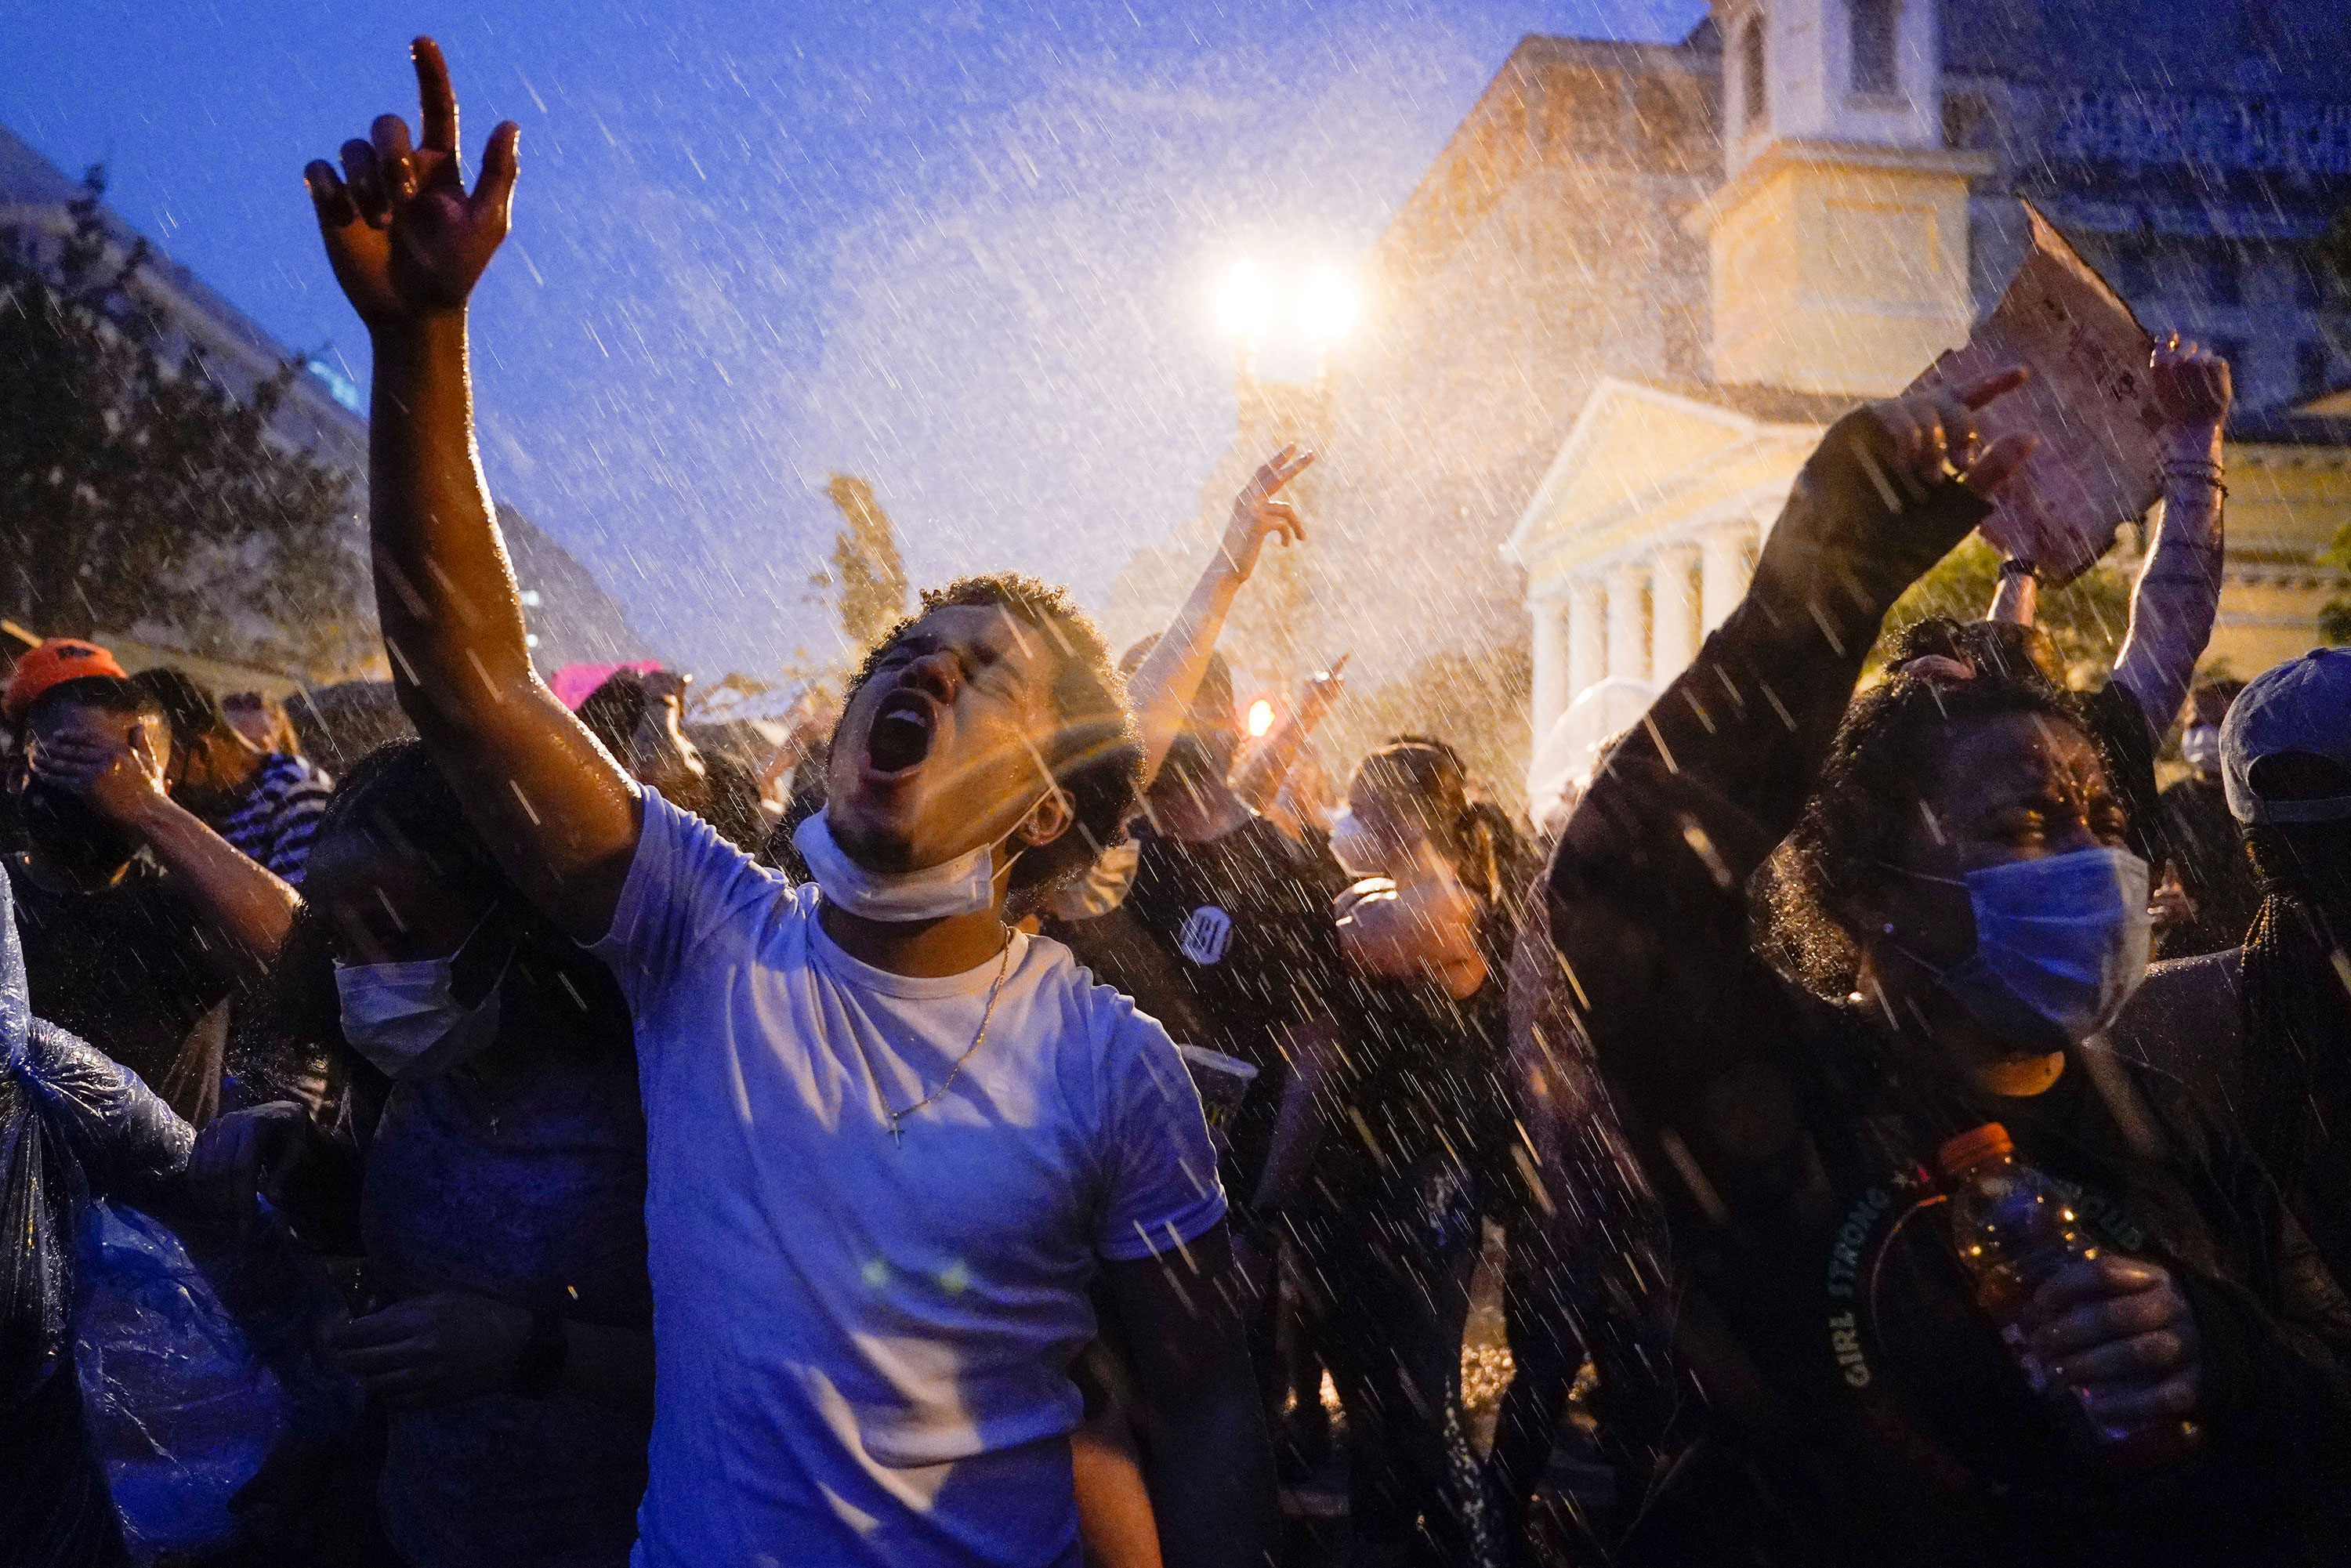 Demonstrators protest in the rain on Thursday night in Washington.